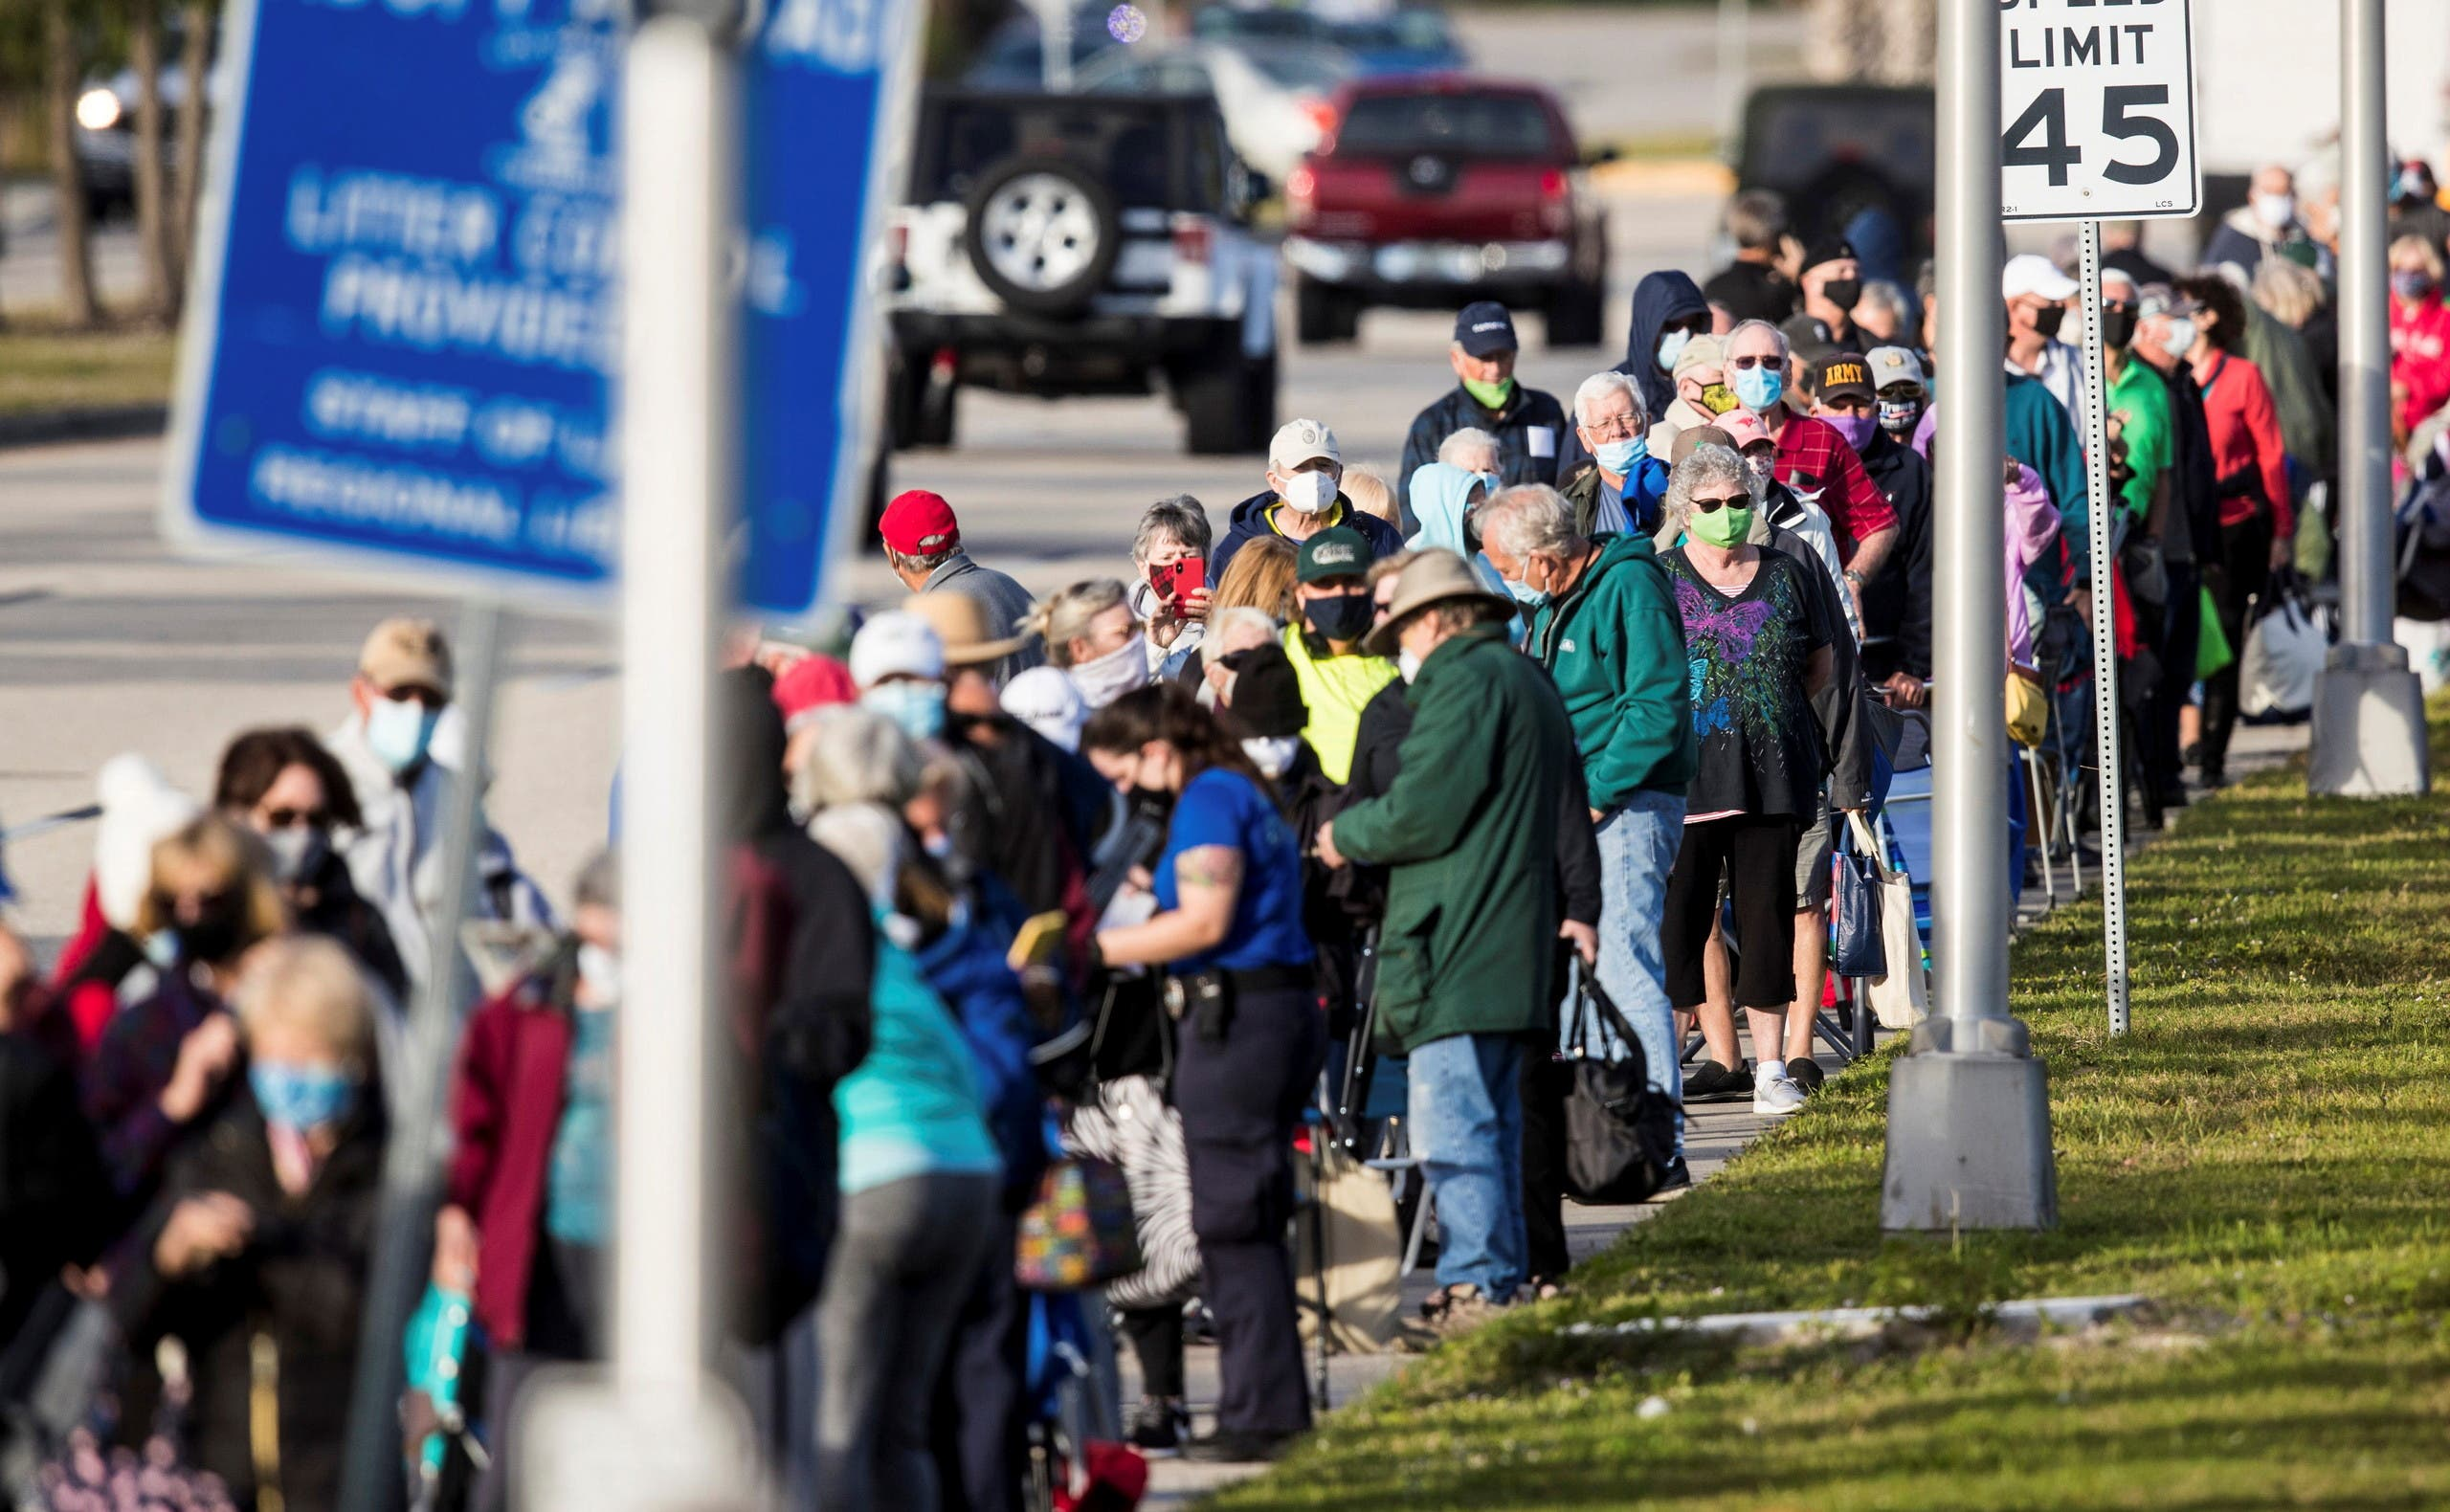 Hundreds wait in line at Lakes Park Regional Library to receive the COVID-19 vaccine in Fort Myers, Florida. (File photo: Reuters)